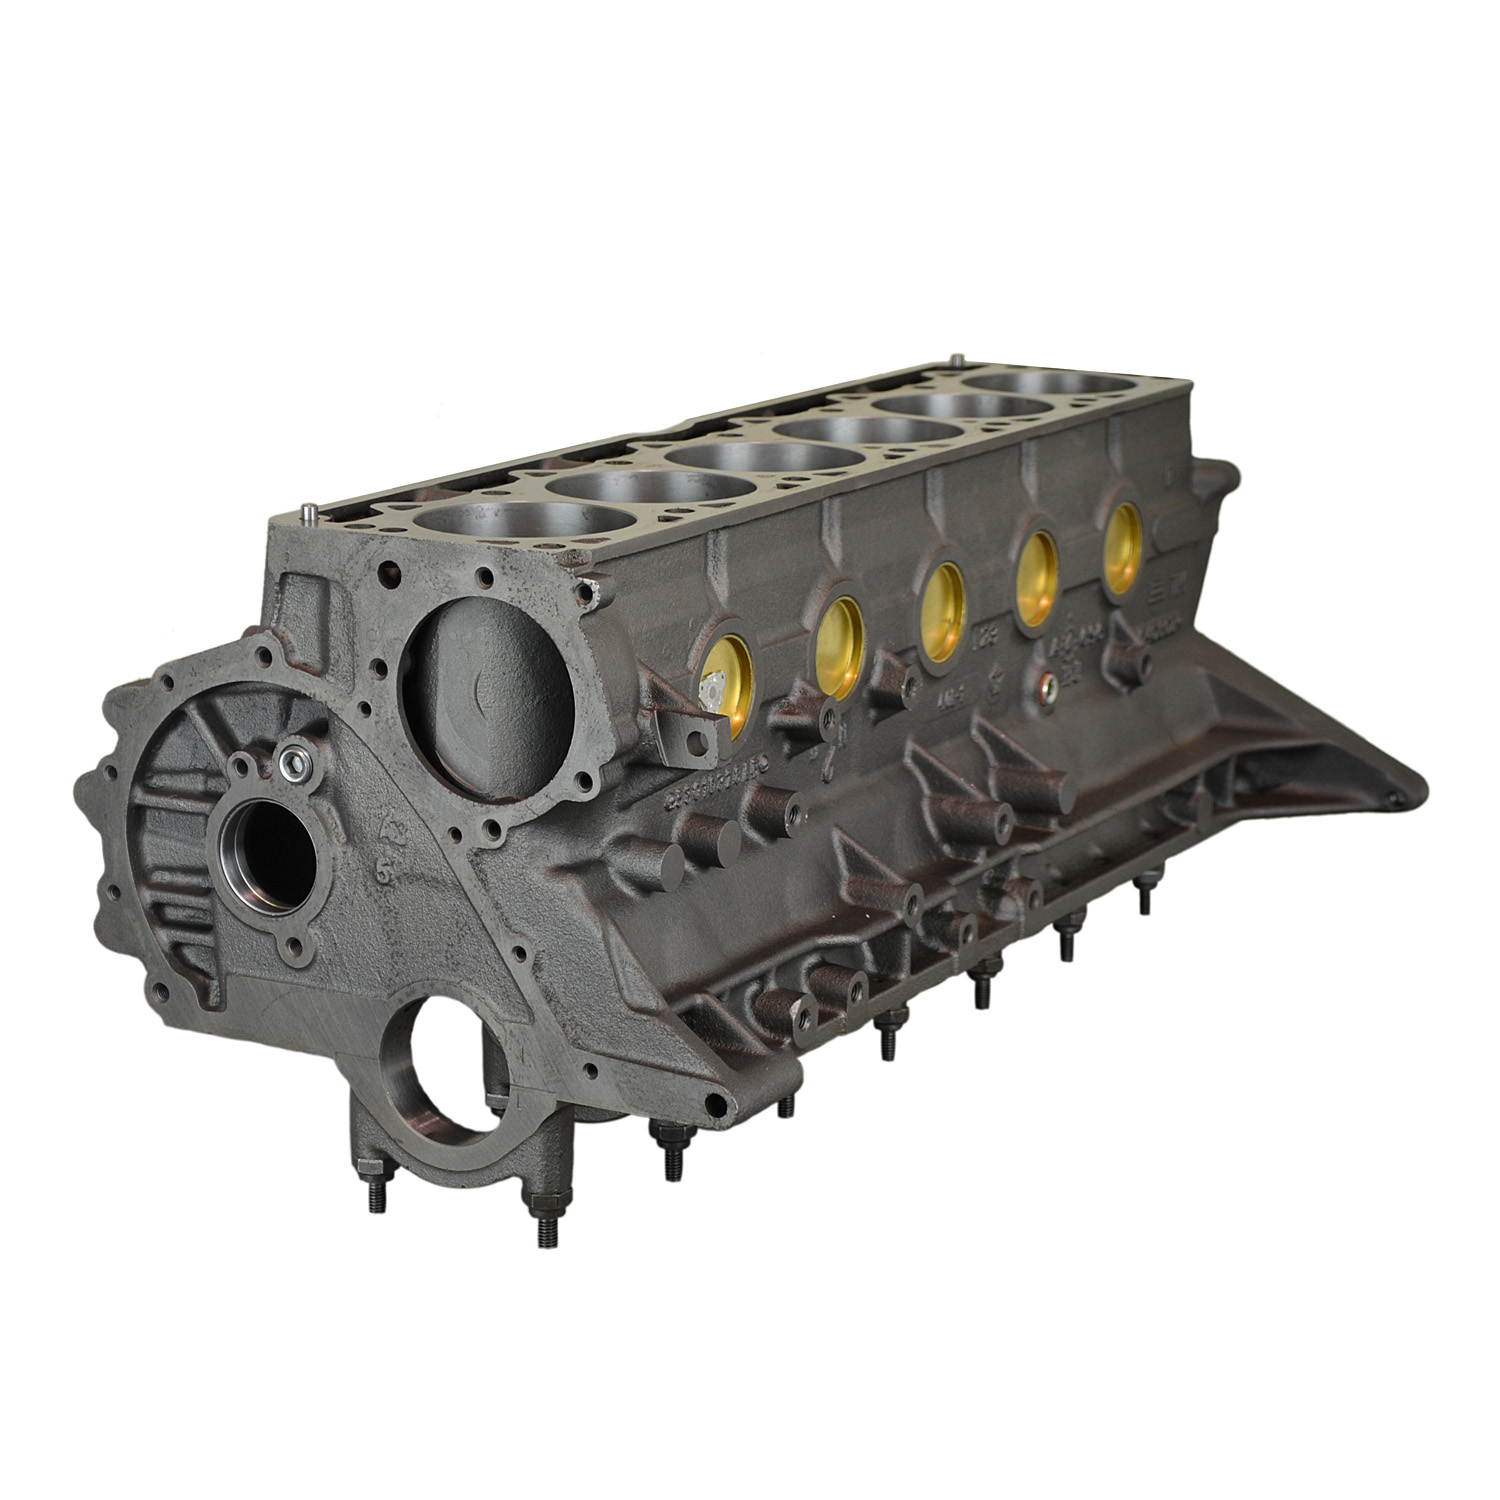 BA33 ATK Performance Engines Engine Block  Bare Automotive